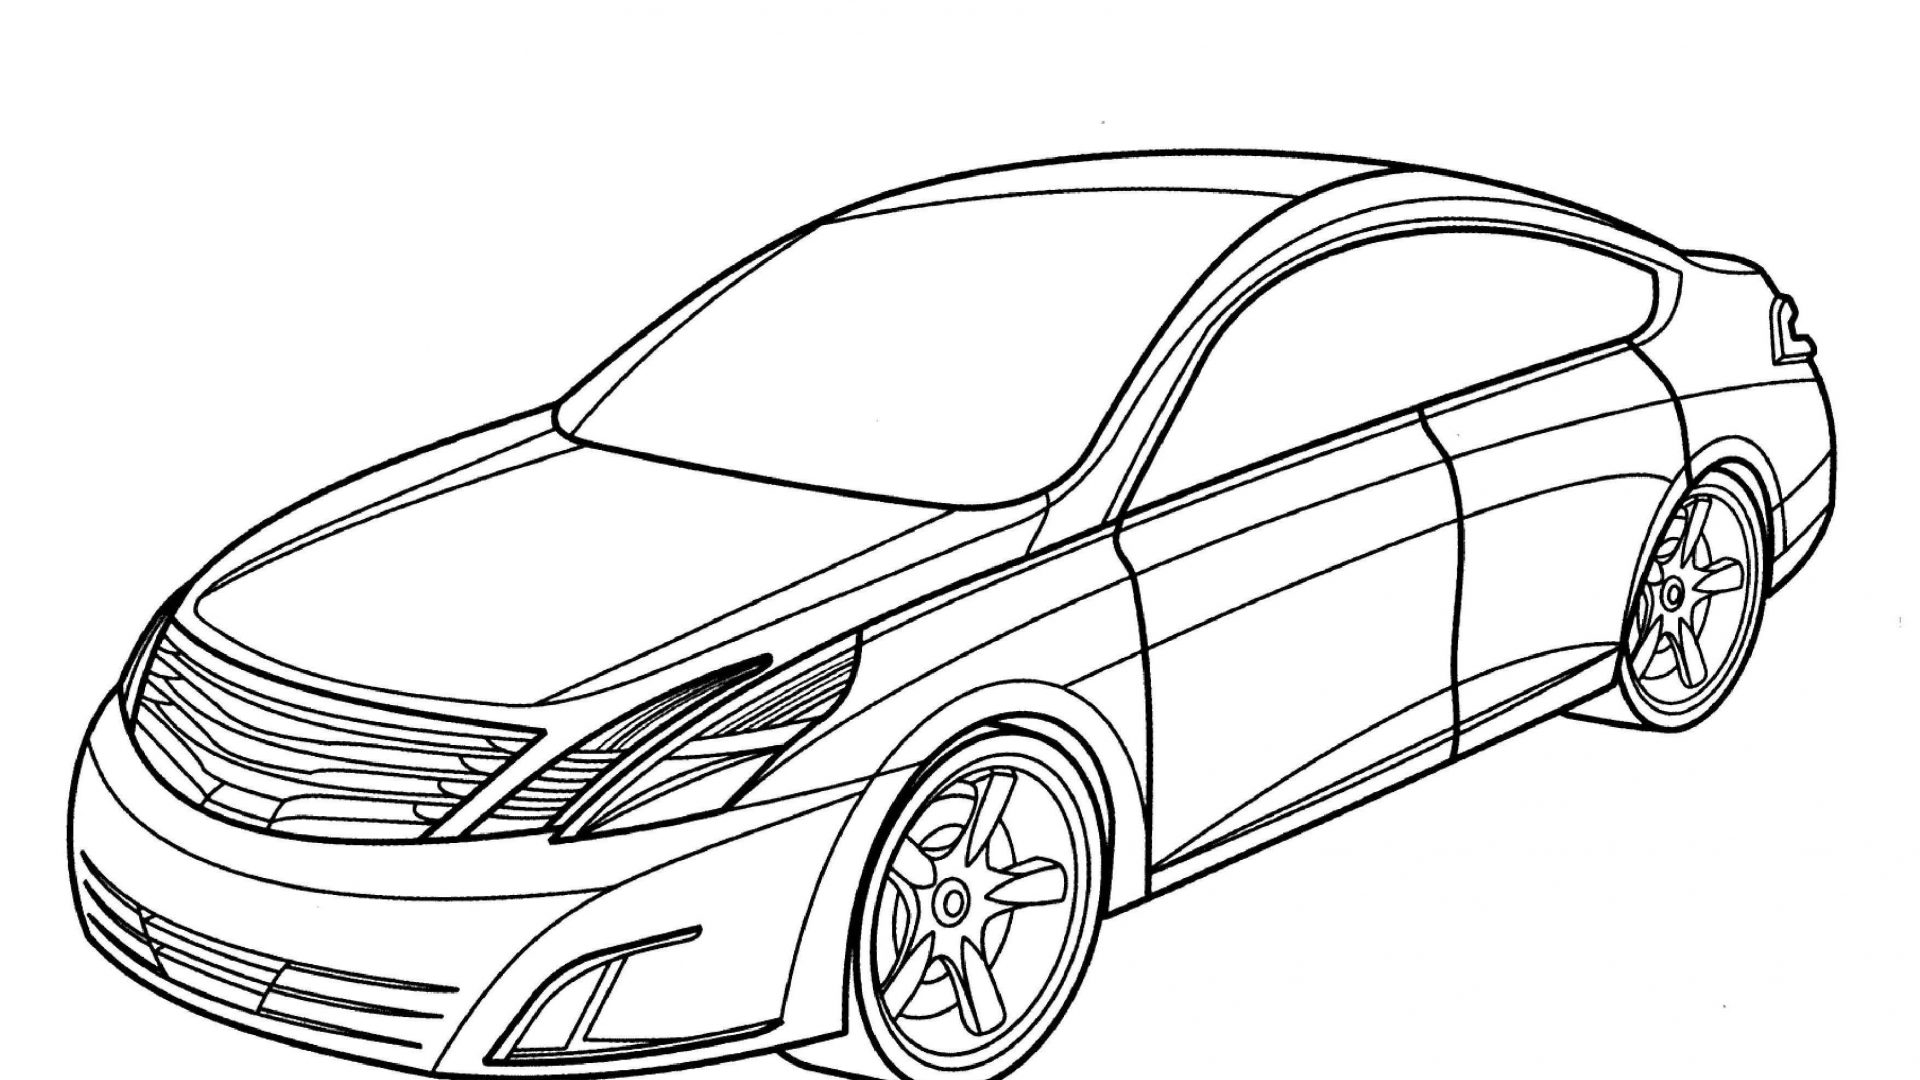 240sx drawing at getdrawings com